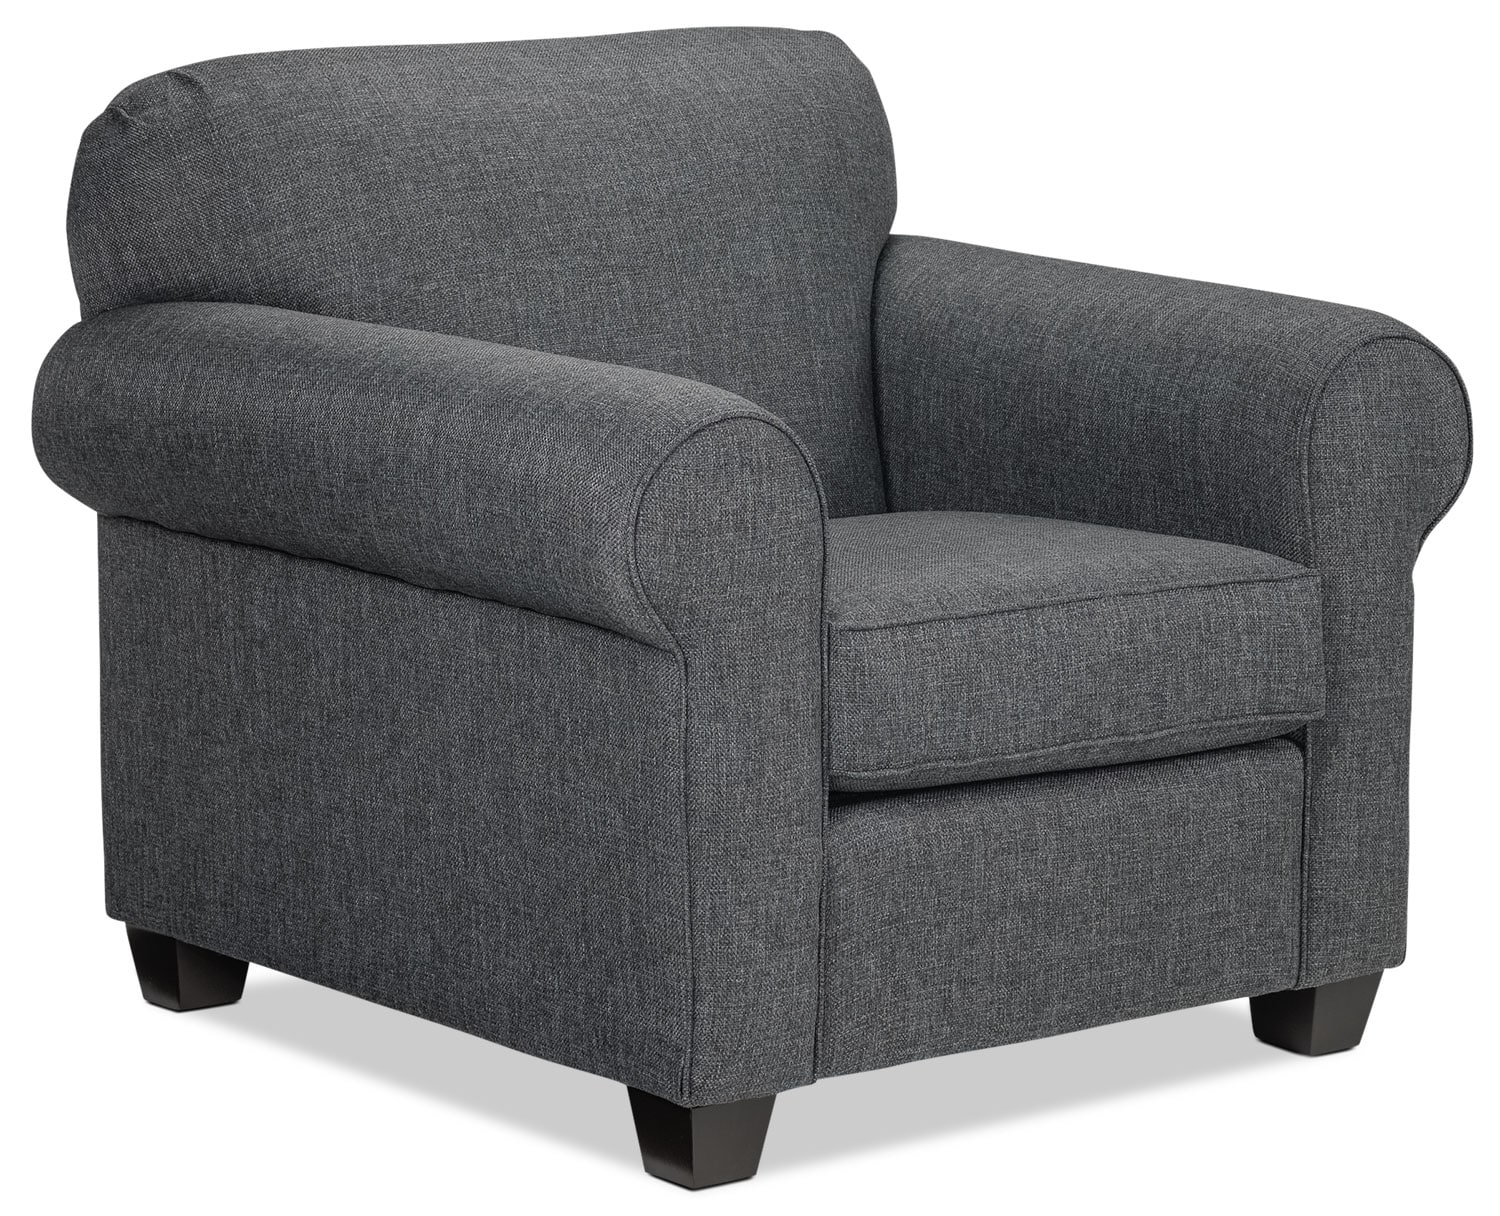 Living Room Furniture - Aristotle Chair - Grey